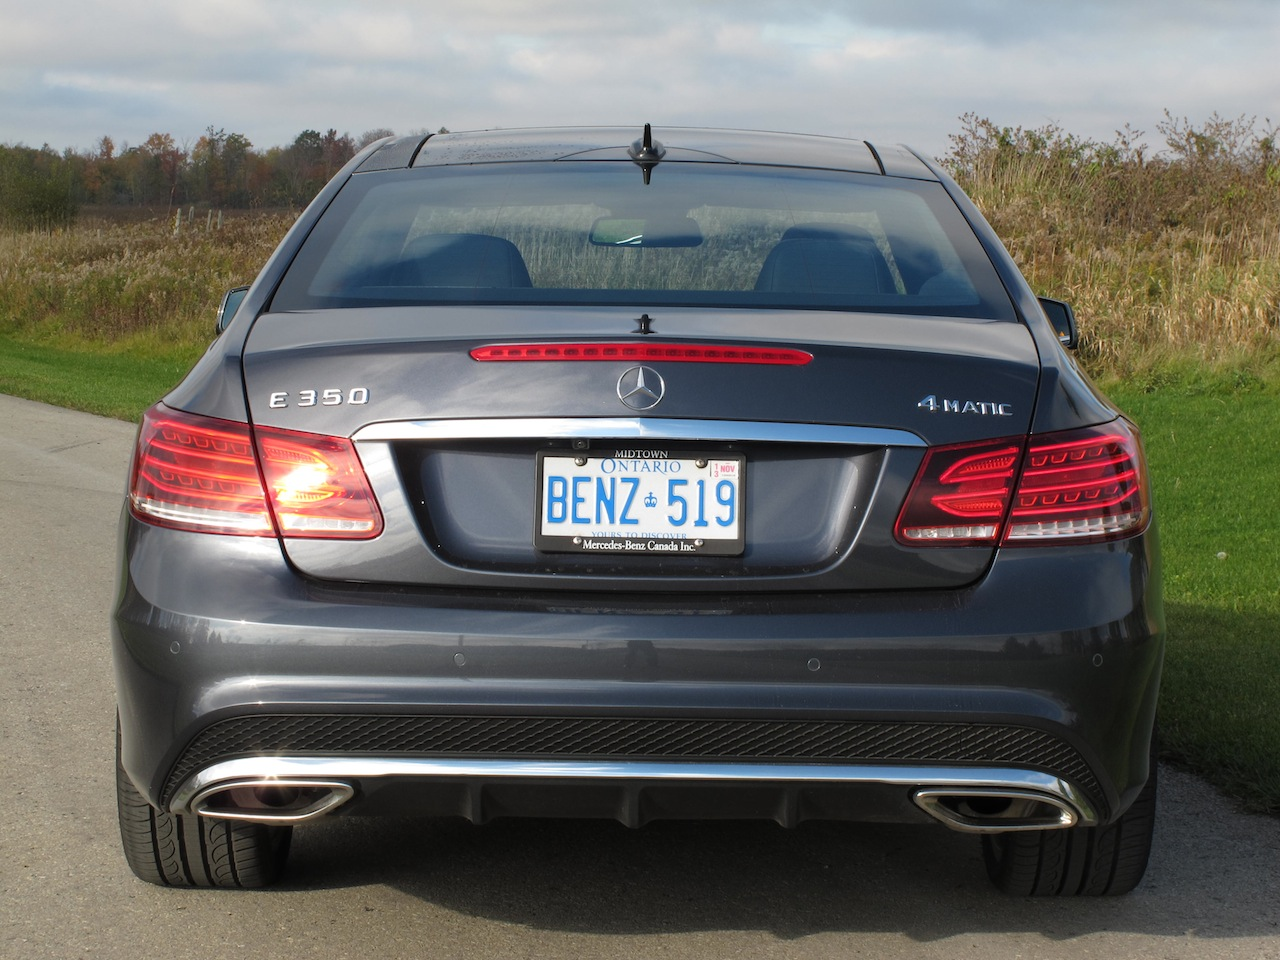 2014 mercedes benz e350 coupe gray rear badge exhausts badge lights